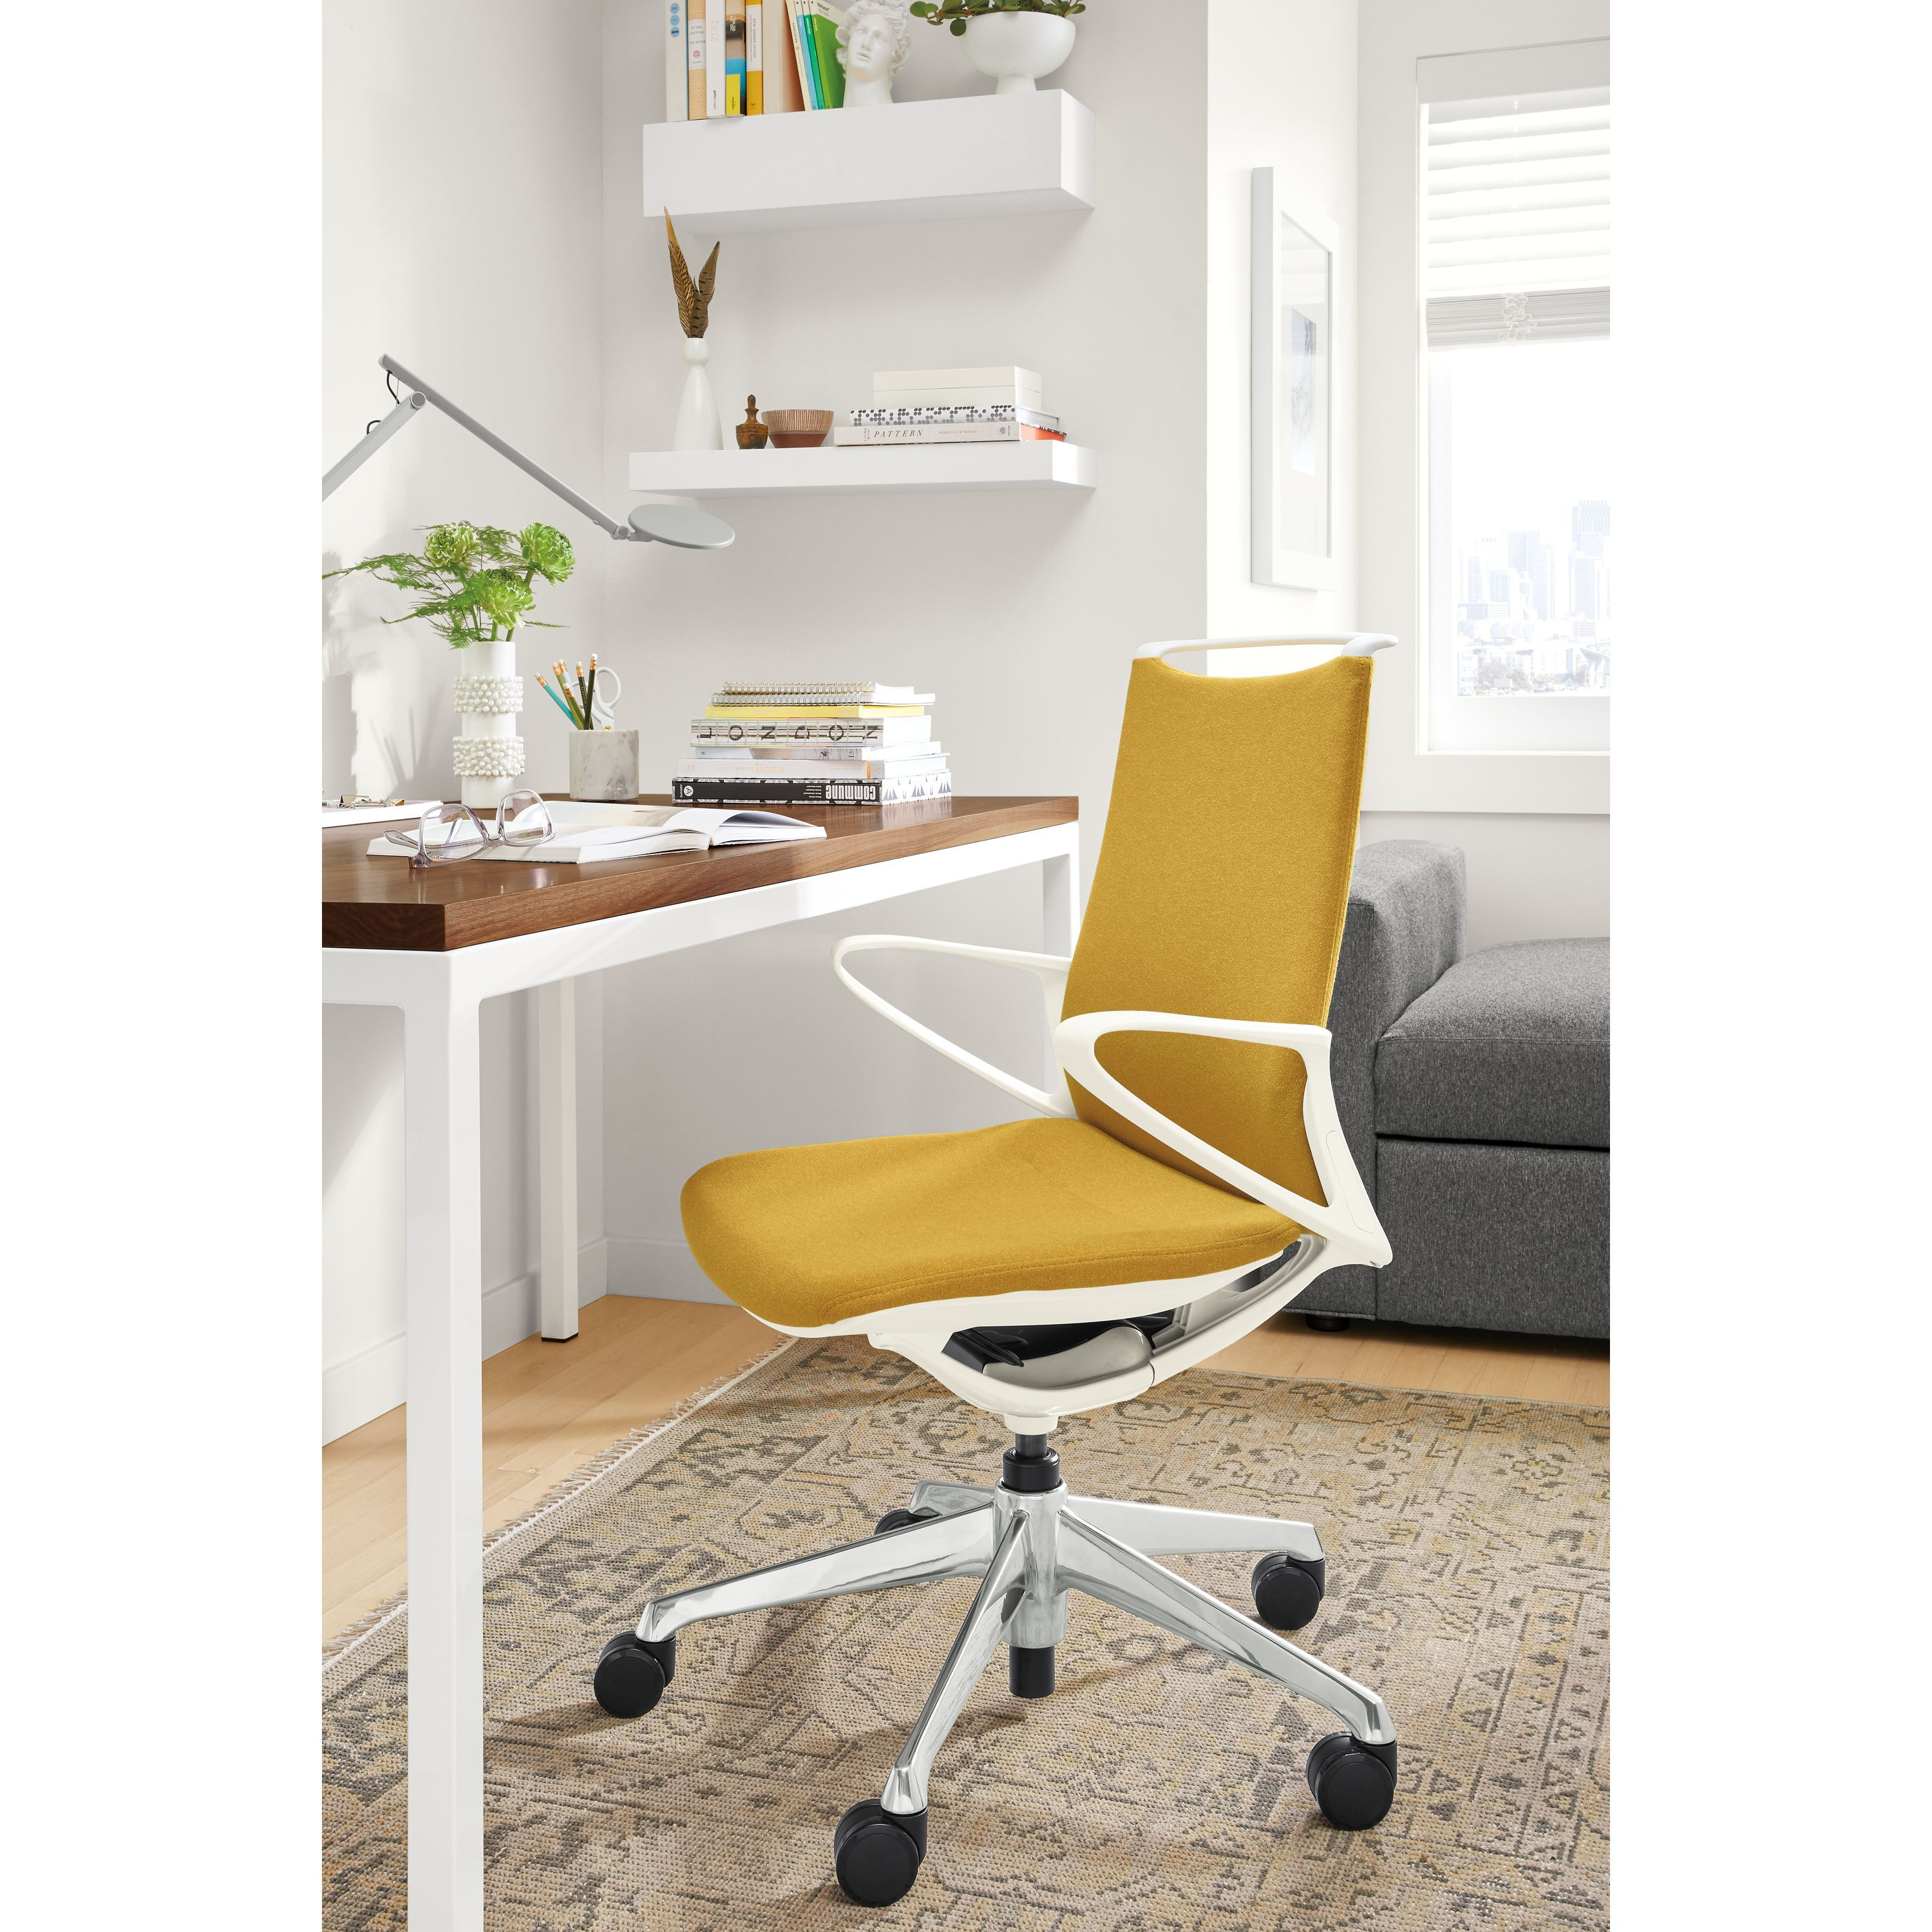 Plimode Office Chair in White - Modern Office Chairs & Task Chairs